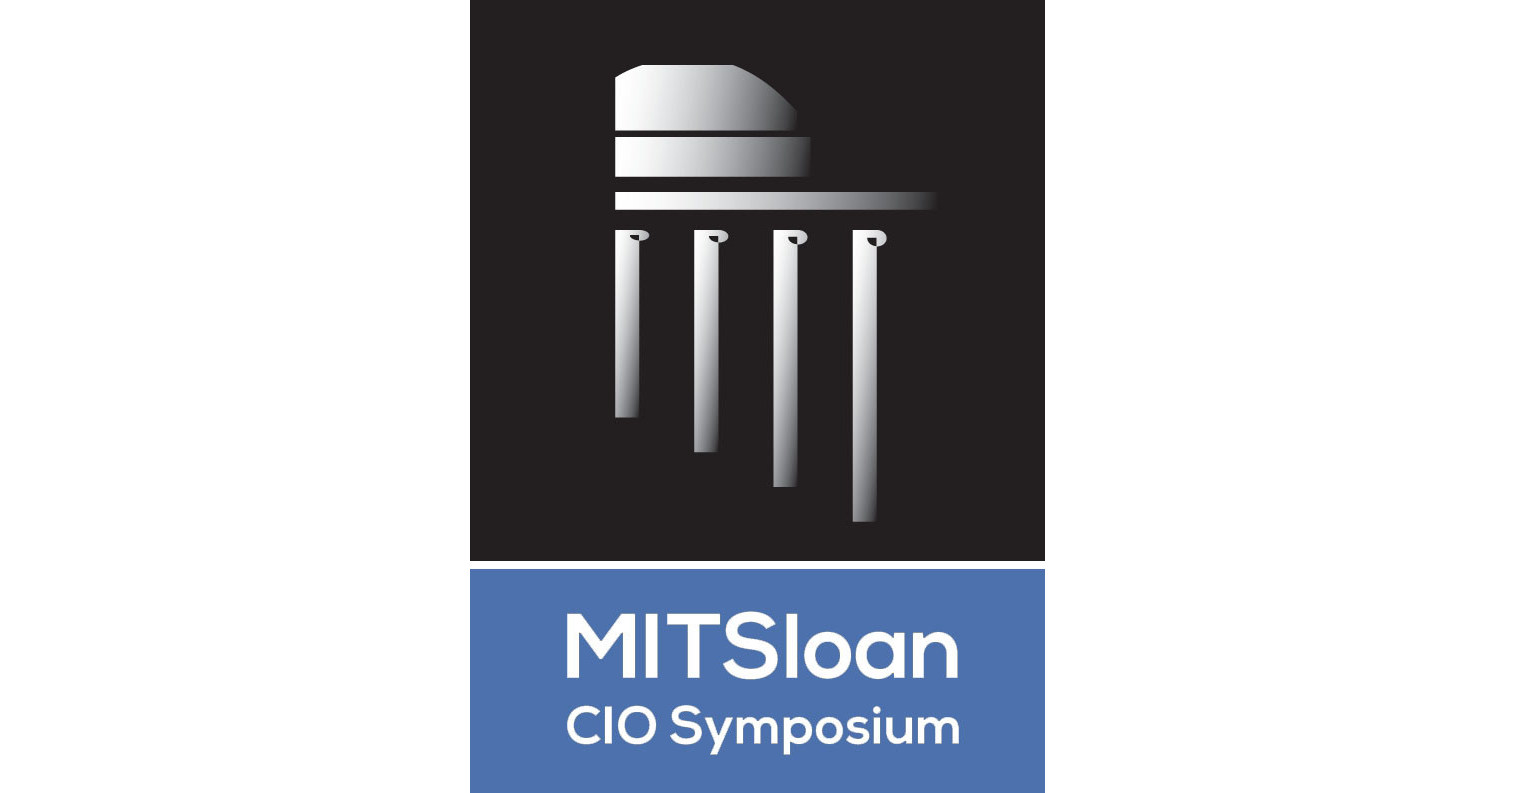 Mit Sloan Cio Symposium Names Leading Chief Information. Medicare Advantage Plans Ny Remote Back Up. Introduction To Business Course. Program For Scheduling Employees. Public Storage Bedford Tx New York Hotel Room. Eig Watson School Of Aviation. Debit Card For Bad Credit Us Convertible Cars. Storage Units San Mateo Online Editing Course. Careers In Cybersecurity Art Schools In Texas